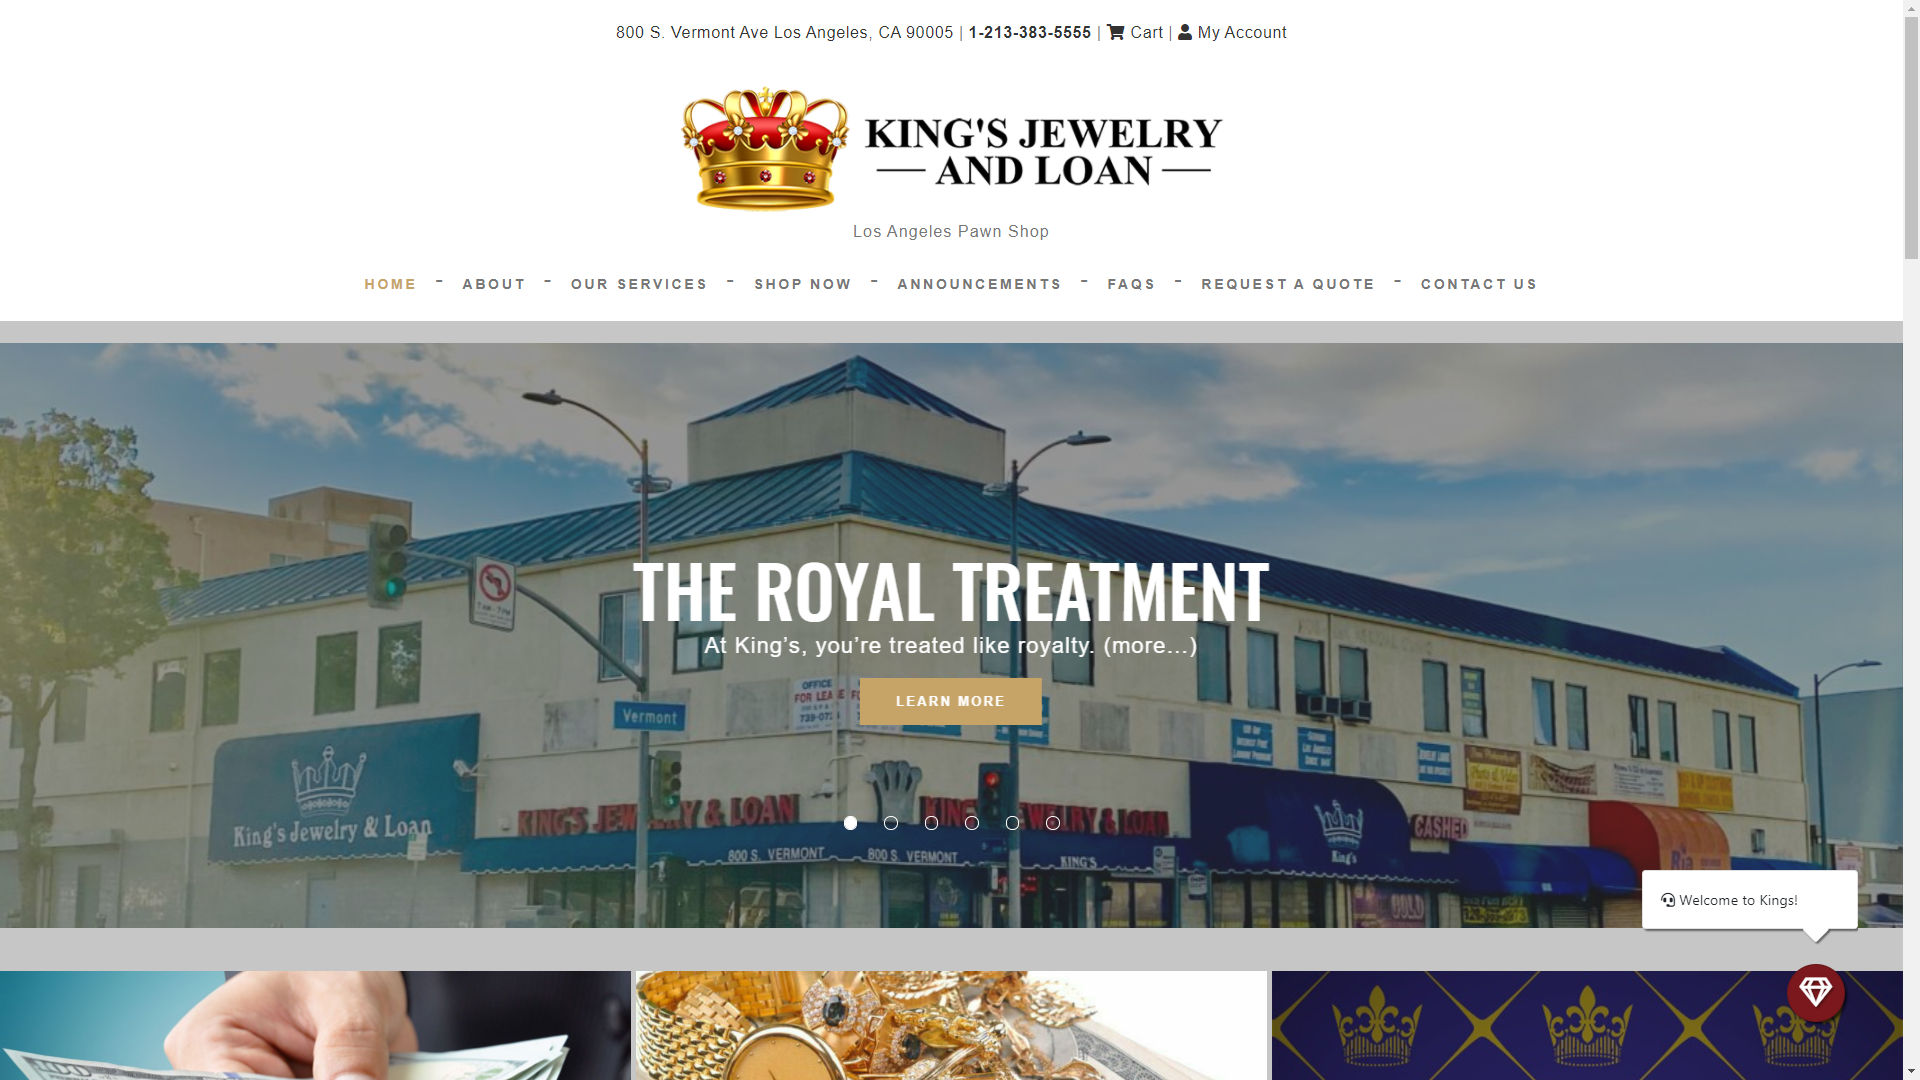 Kings Jewelry and Loan website